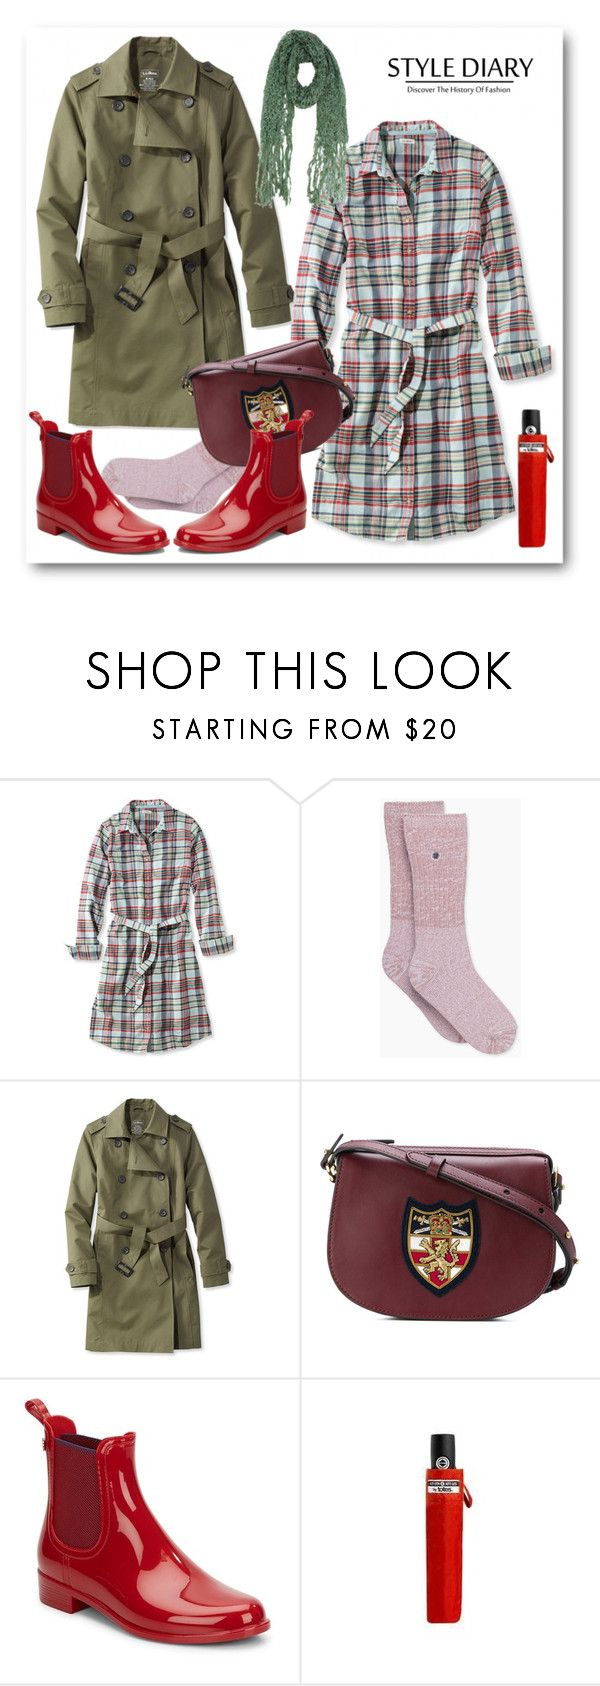 """""""RCC 9.17"""" by vandinha2010 ❤ liked on Polyvore featuring L.L.Bean, Polo Ralph Lauren and Igor"""